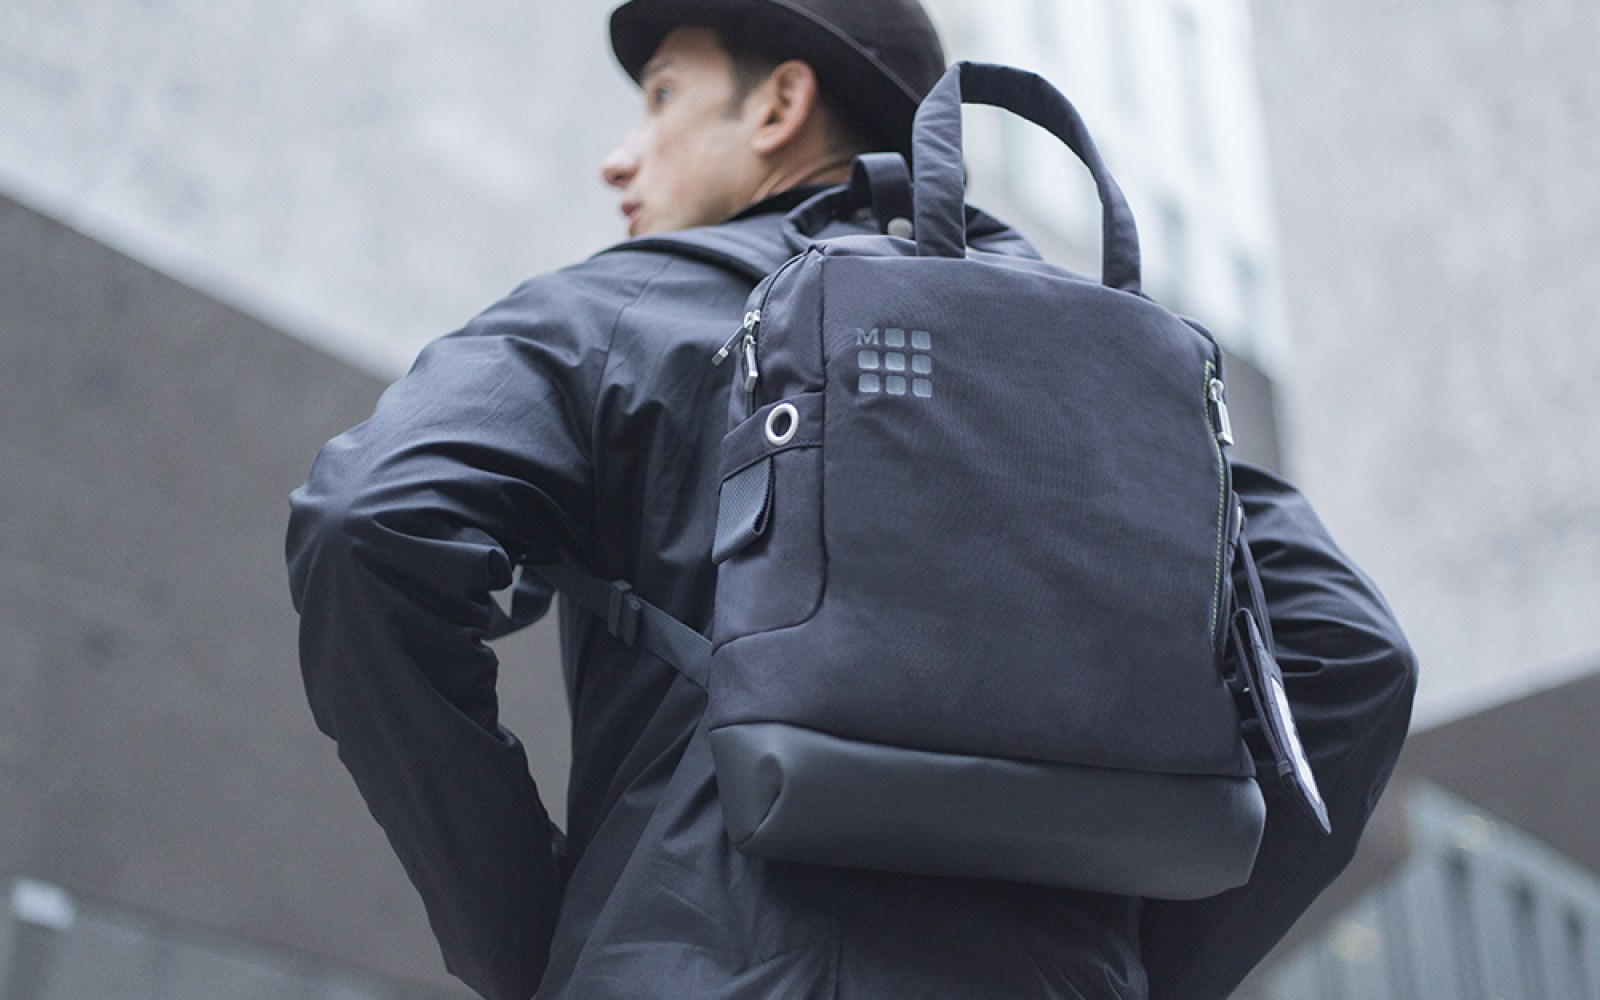 Moleskine announces new backpack and messenger style bags for travelers, artists, more